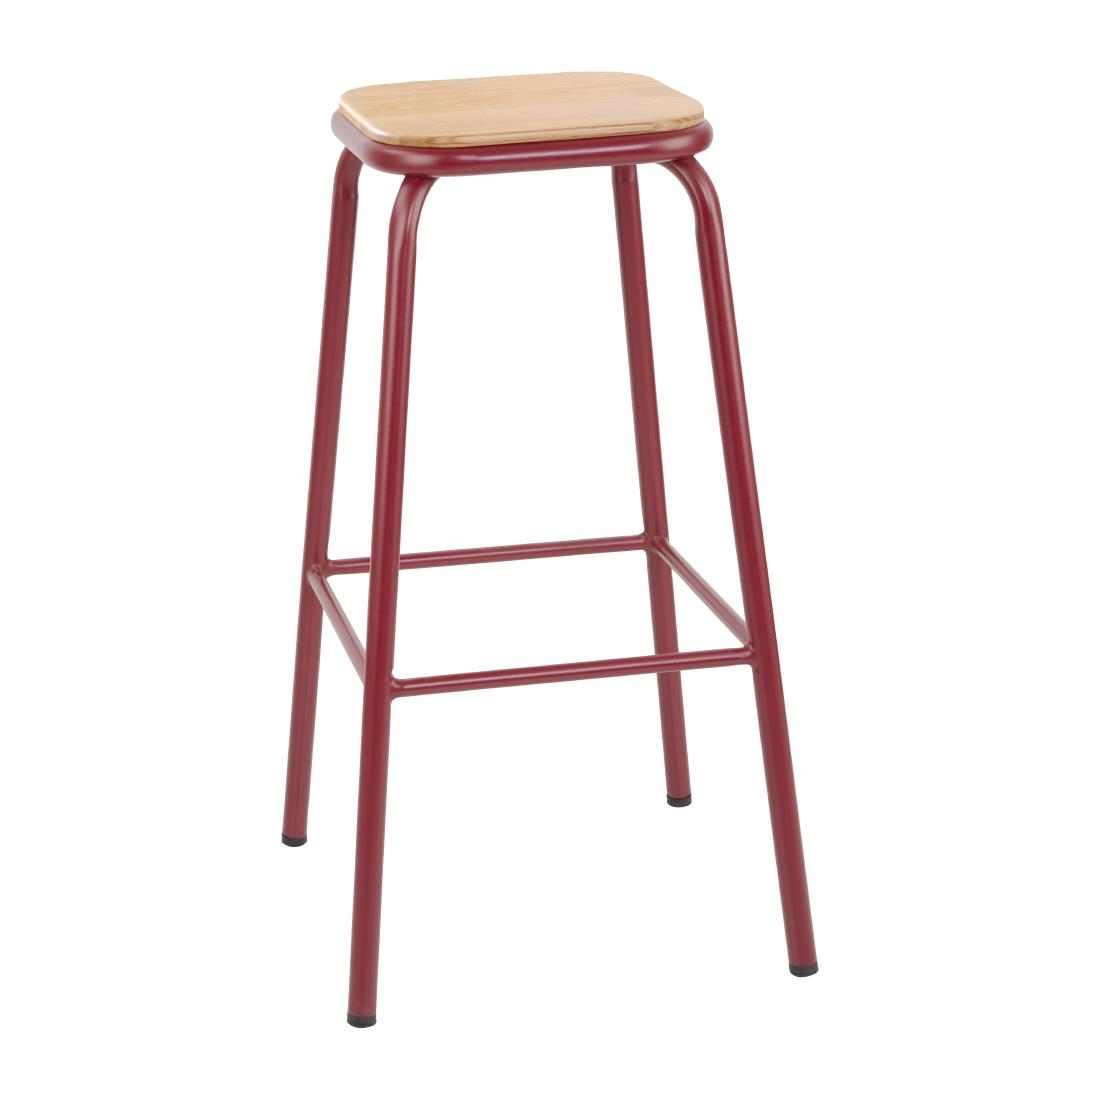 Image of Bolero Cantina High Stools with Wooden Seat Pad Wine Red (Pack of 4) Pack of 4